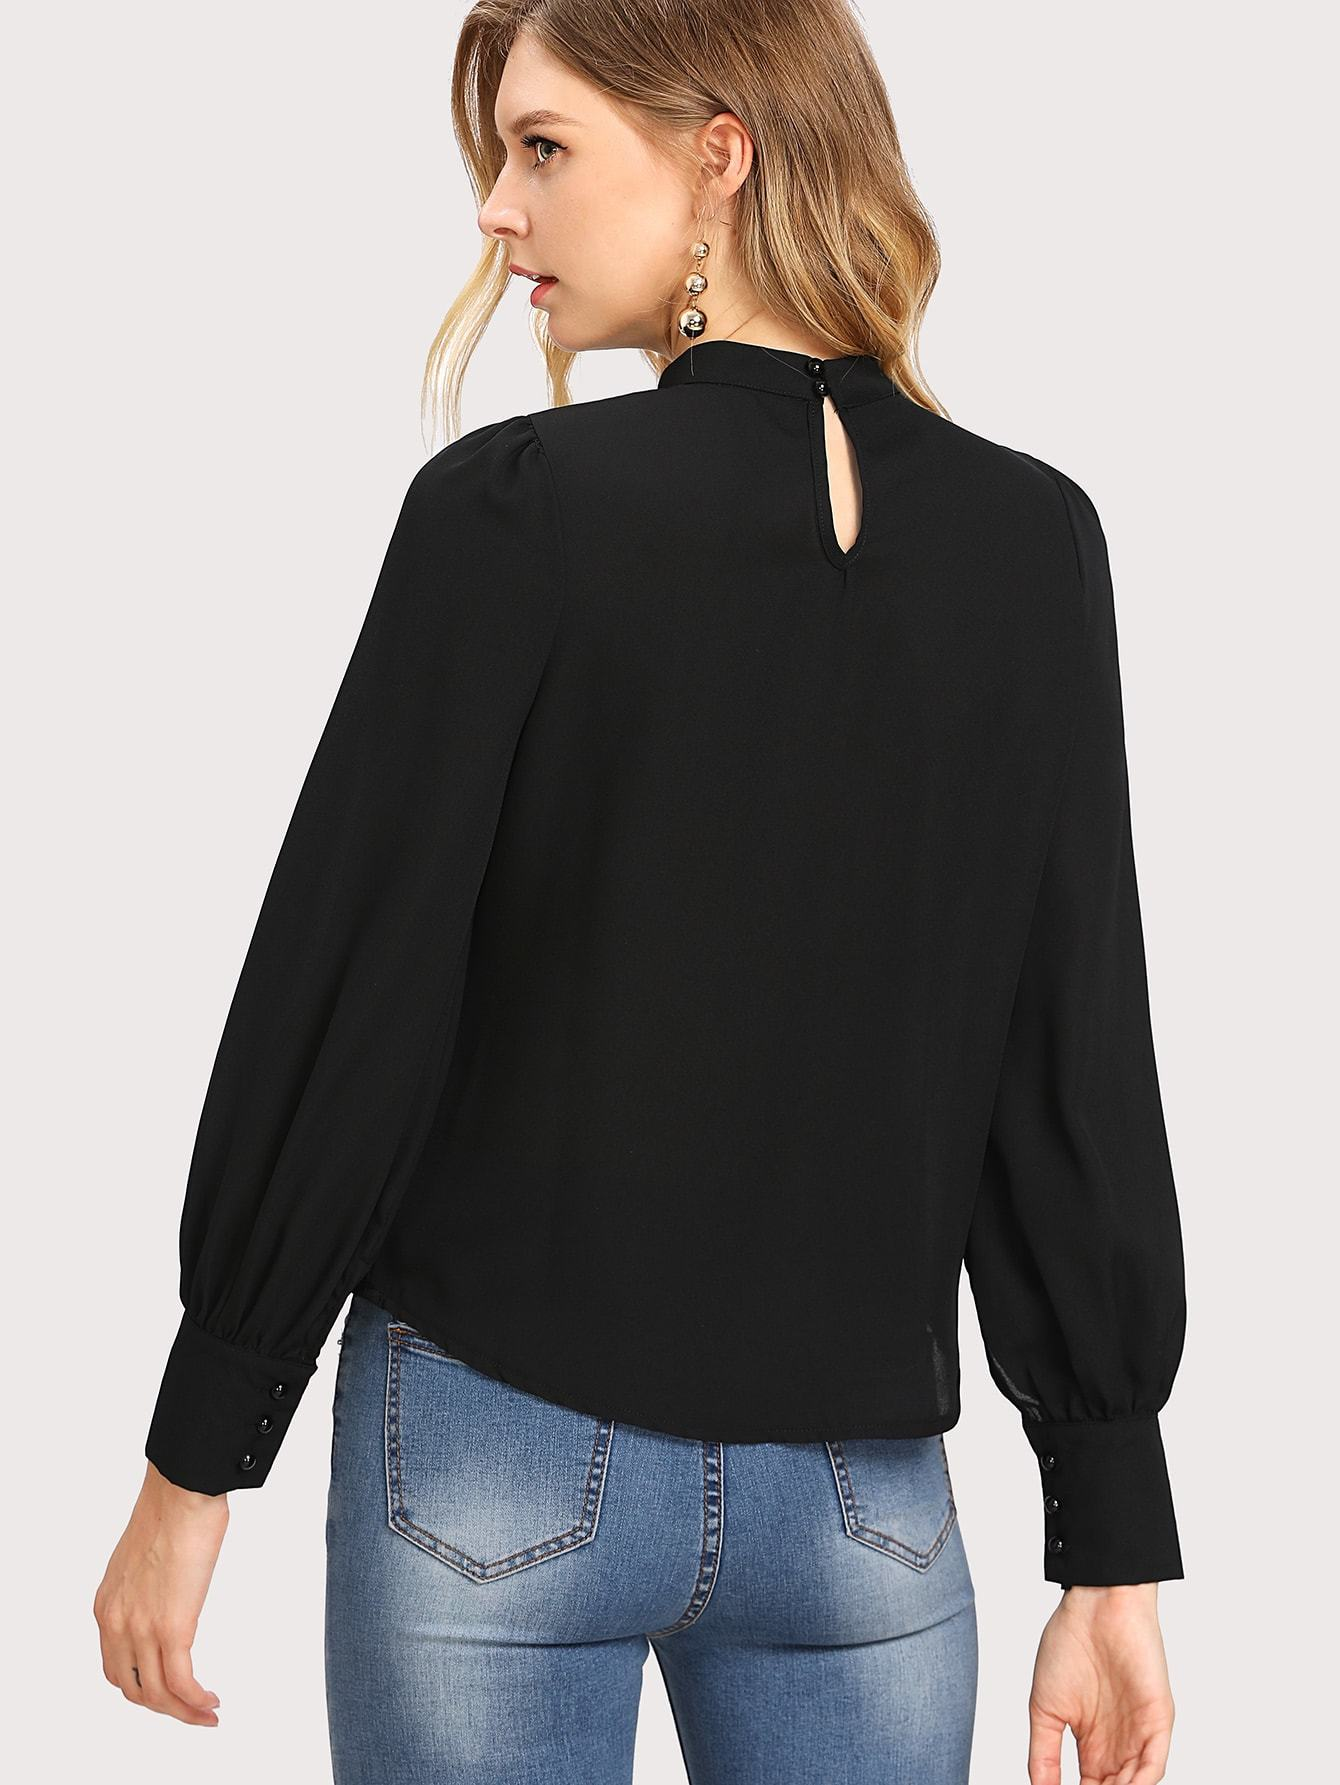 Black Pleated Detail Blouse - LoveSylvester